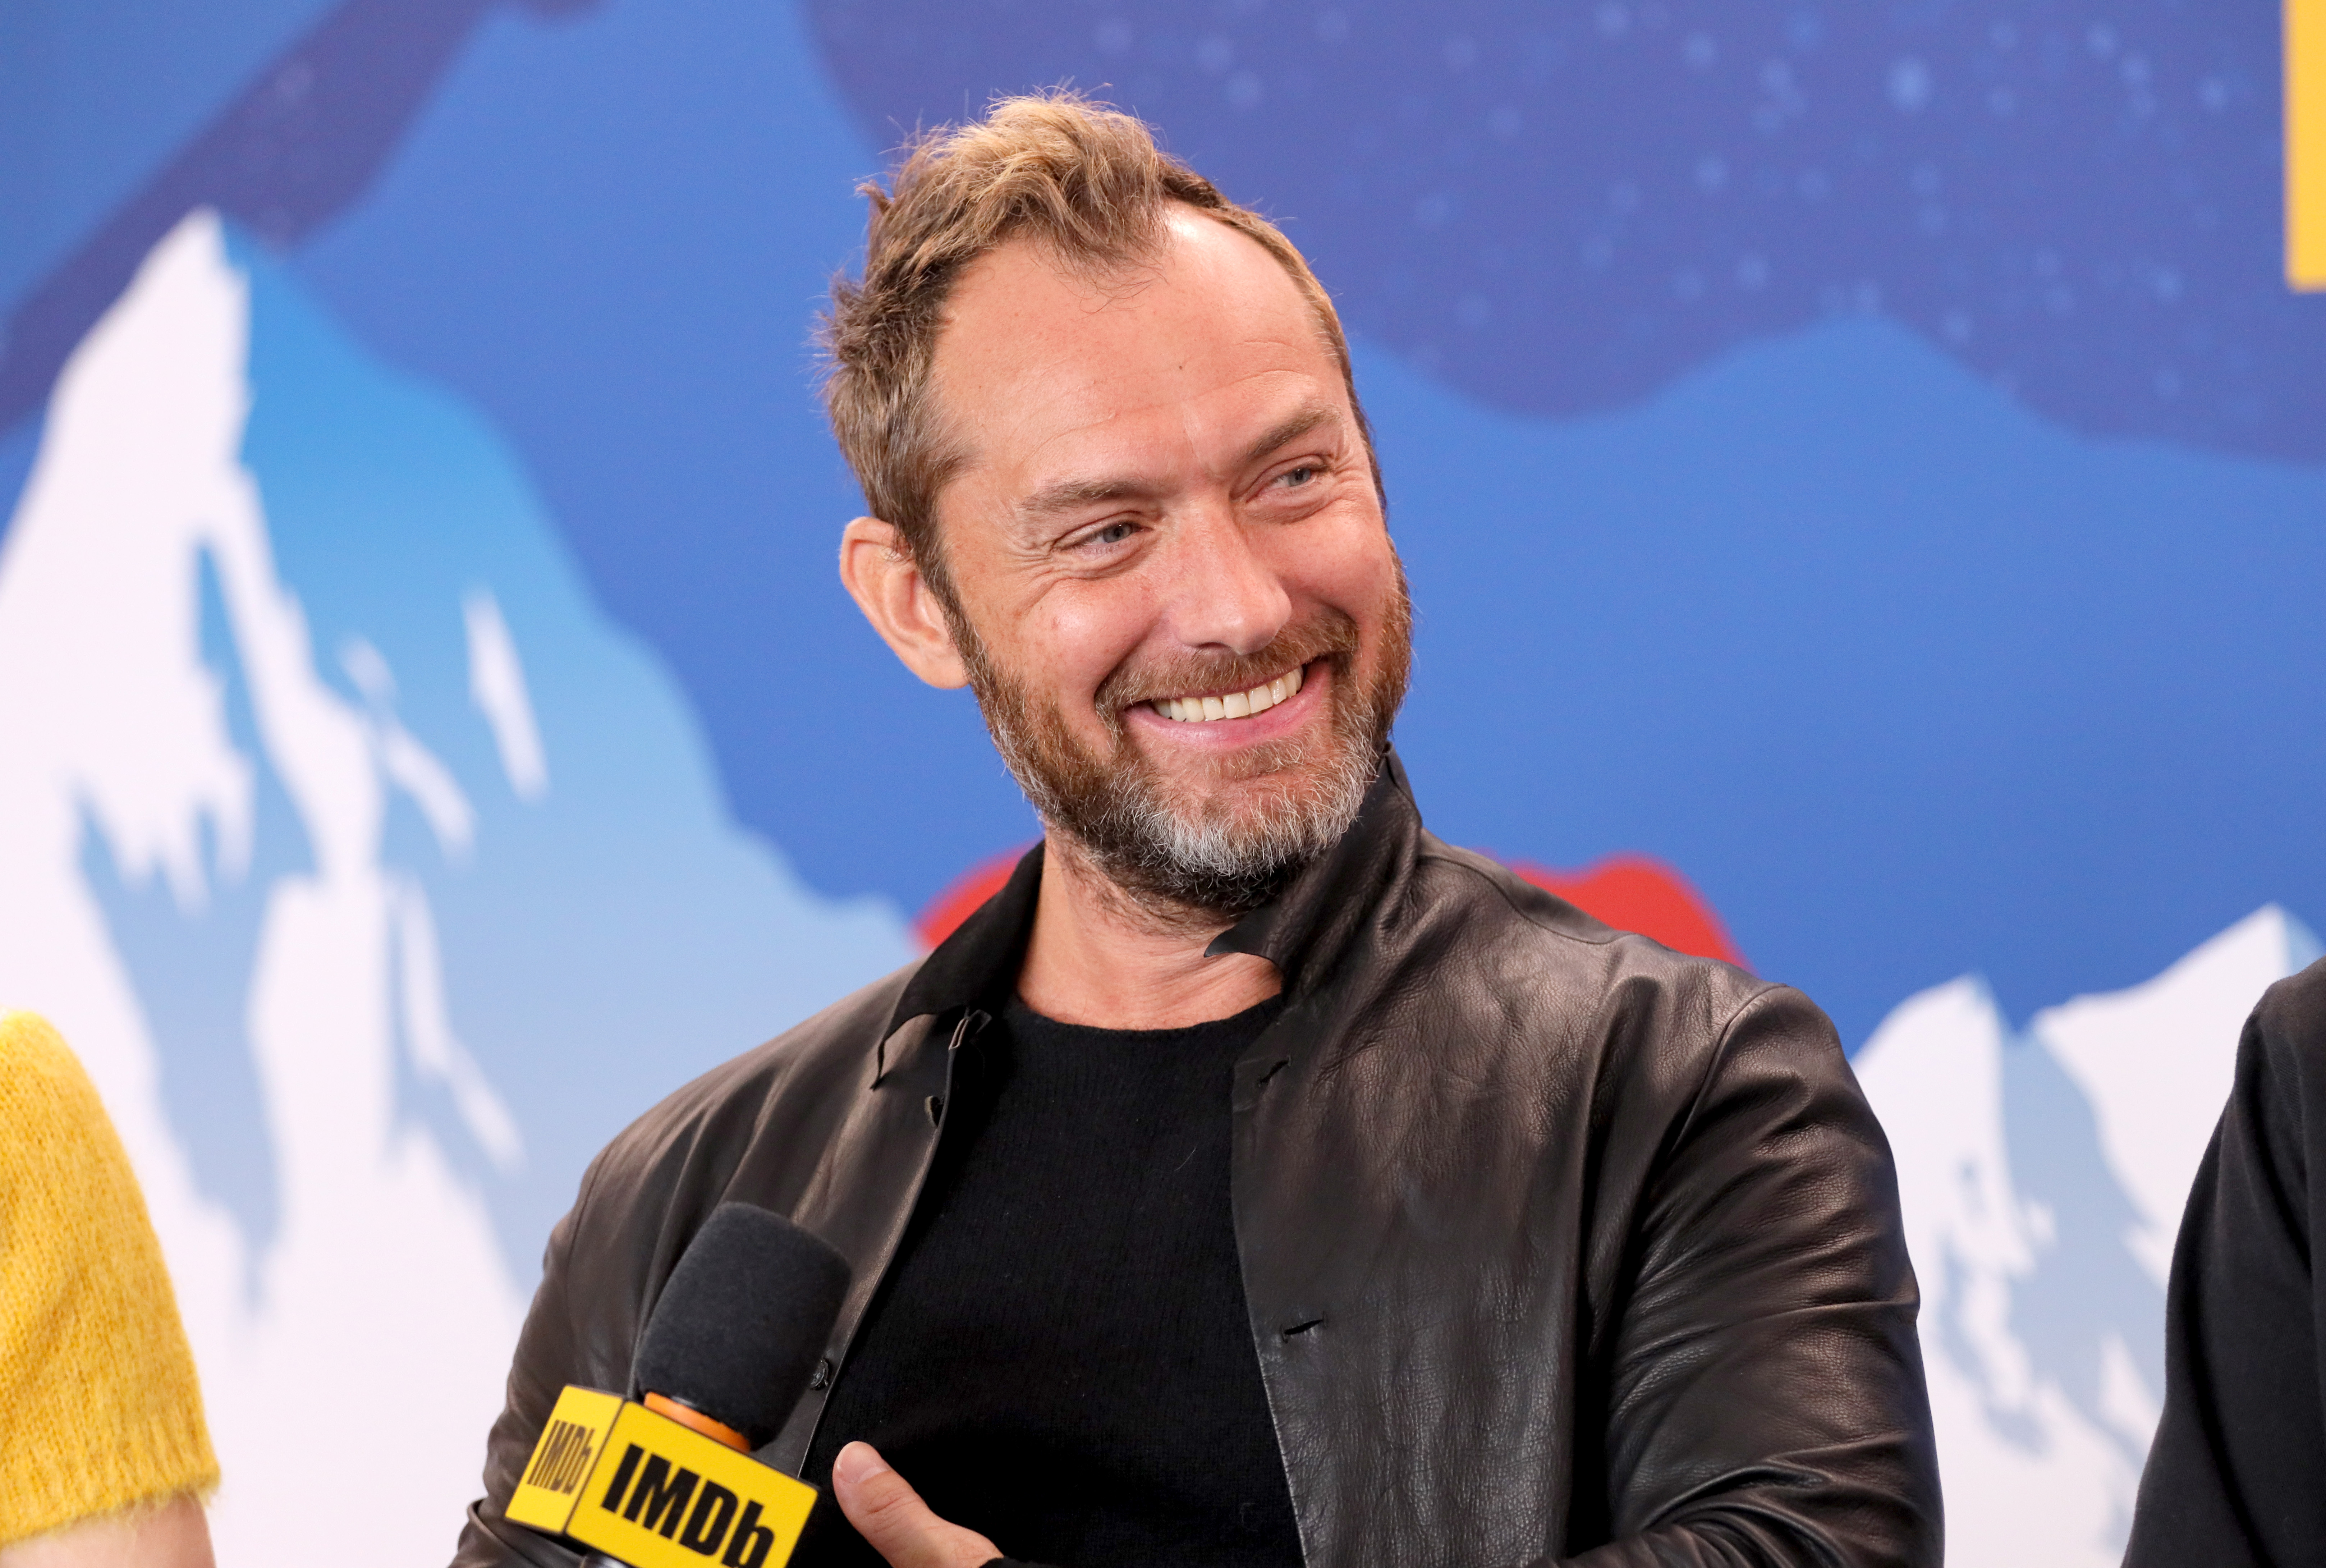 Jude Law of 'The Nest' attends the IMDb Studio at Acura Festival Village on location at the 2020 Sundance Film Festival - Day 3 on January 26, 2020 in Park City, Utah. (Photo by Rich Polk/Getty Images for IMDb)